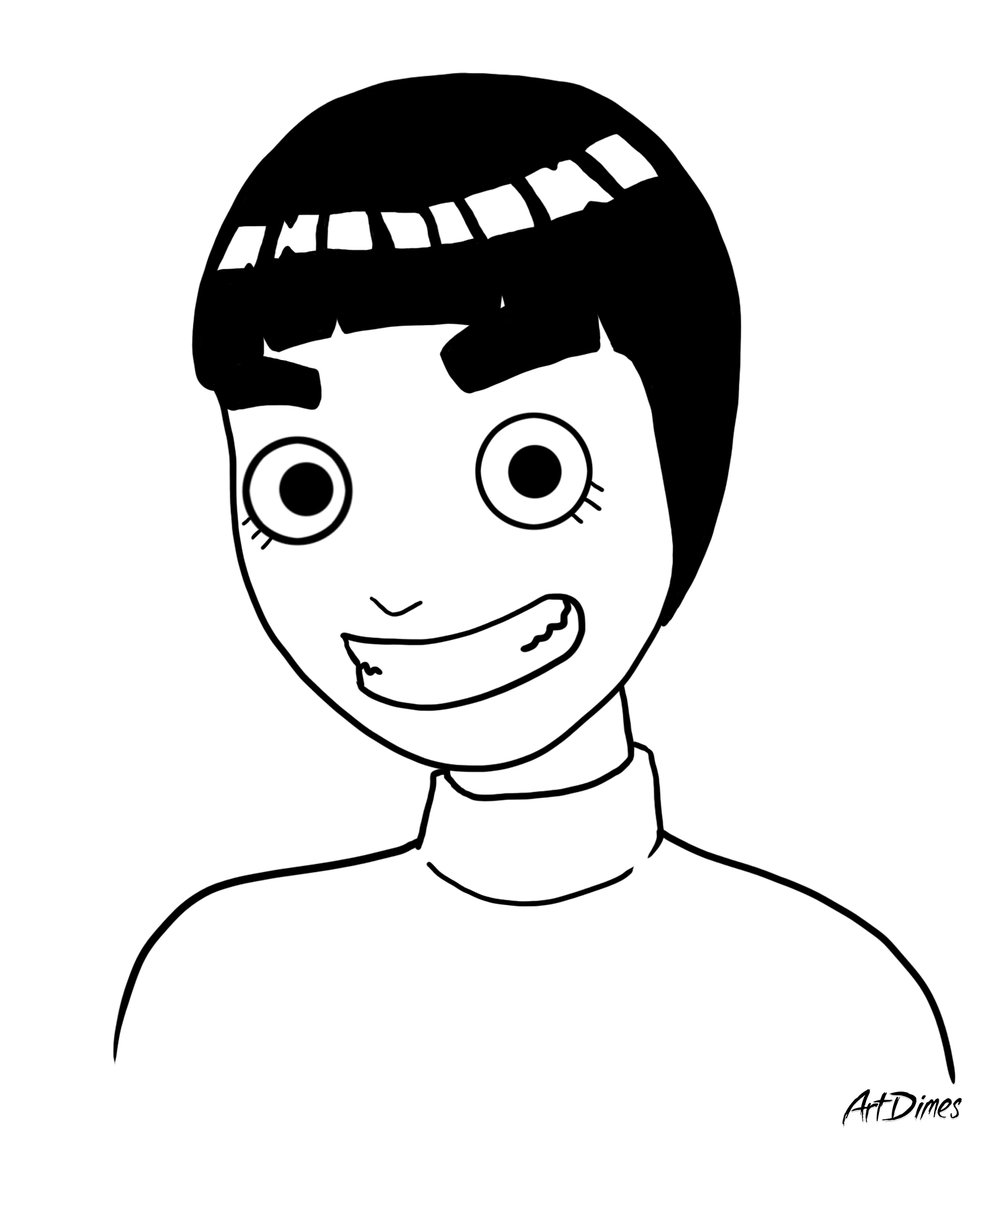 Rock Lee by Art Dimes .jpg